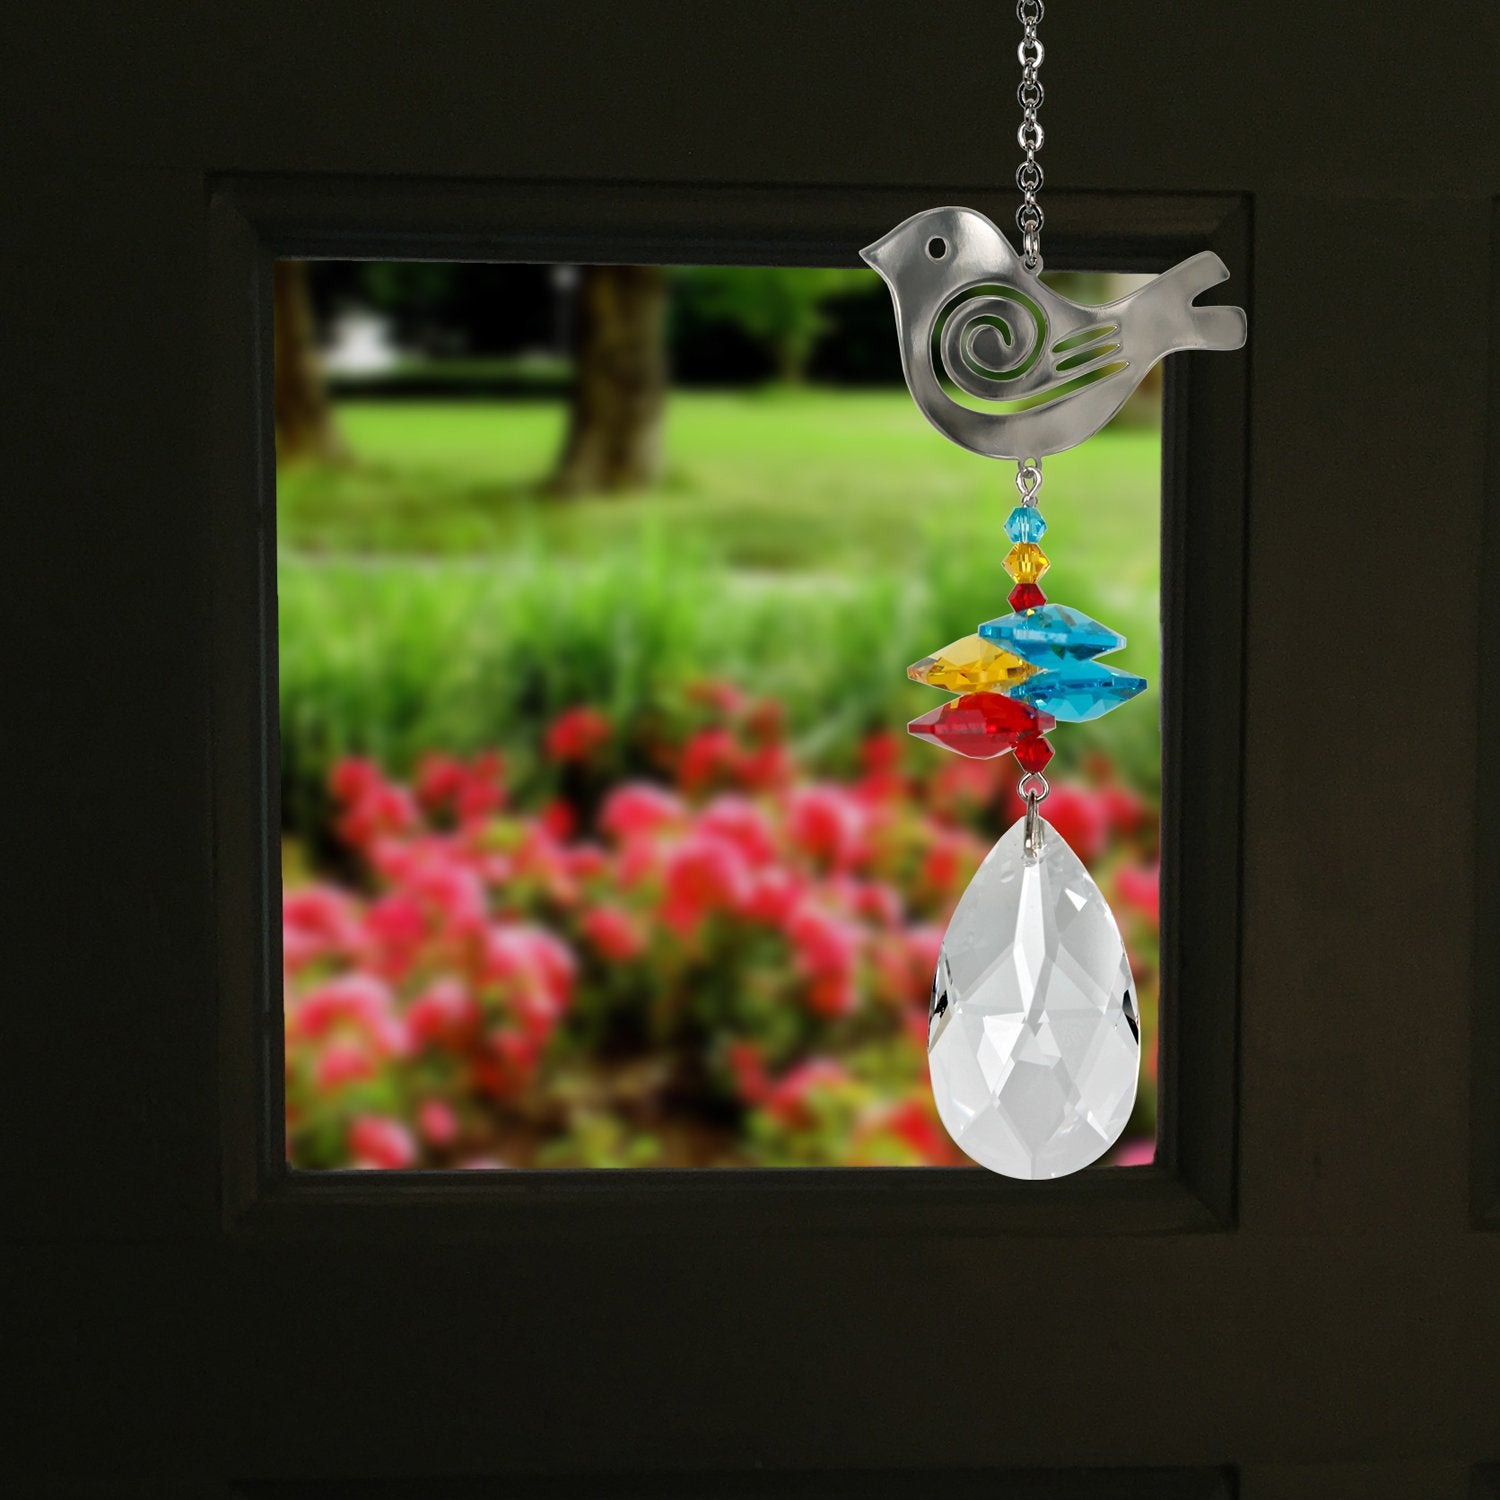 Crystal Fantasy Suncatcher - Bird lifestyle image